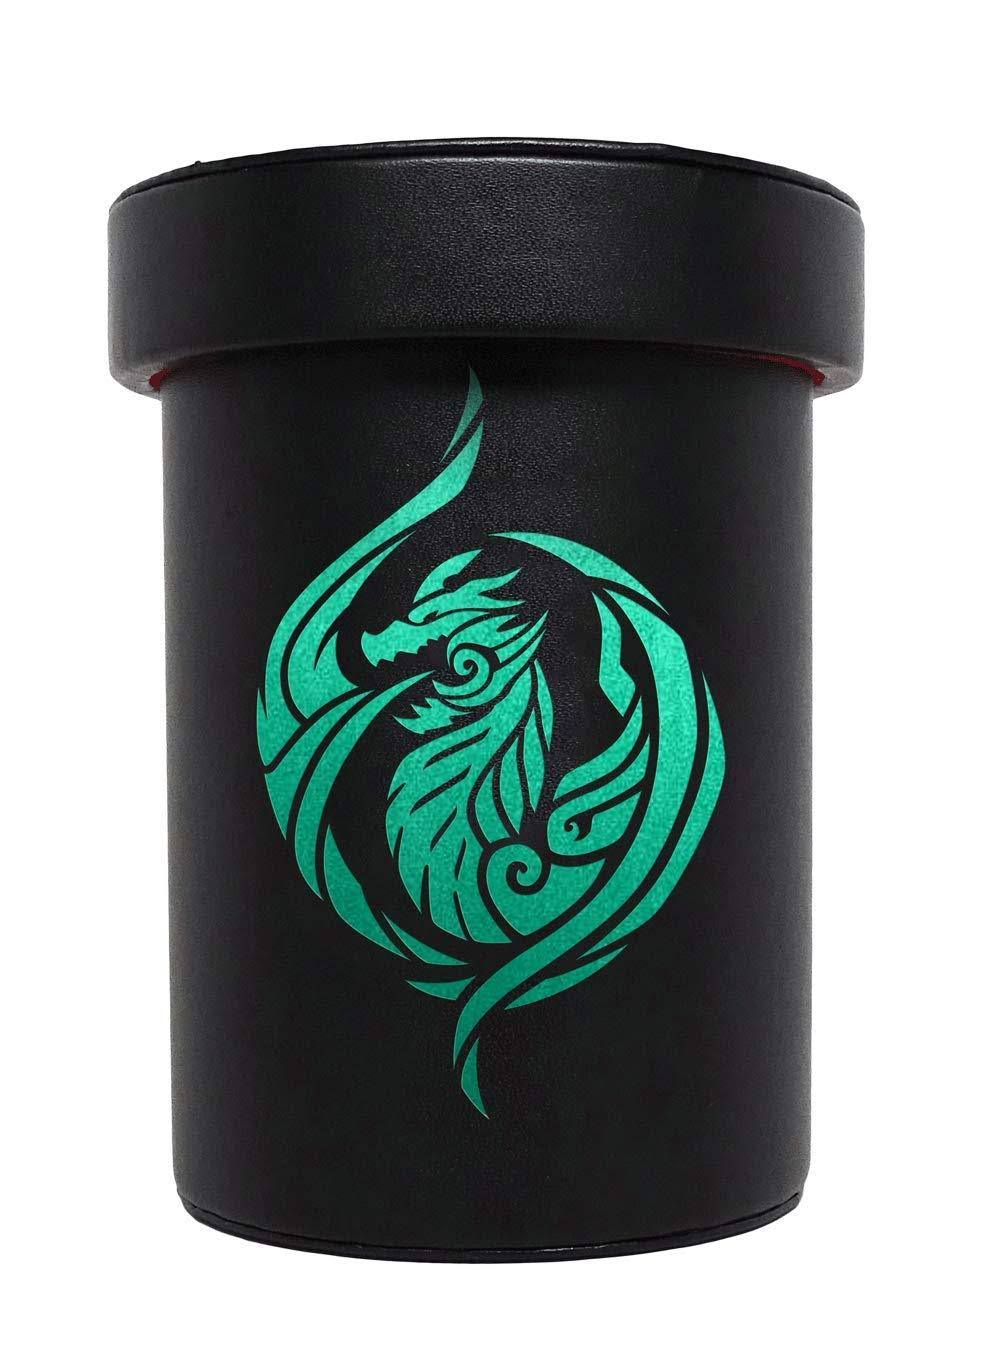 Over Sized Dice Cup - Dragon's Breath Design